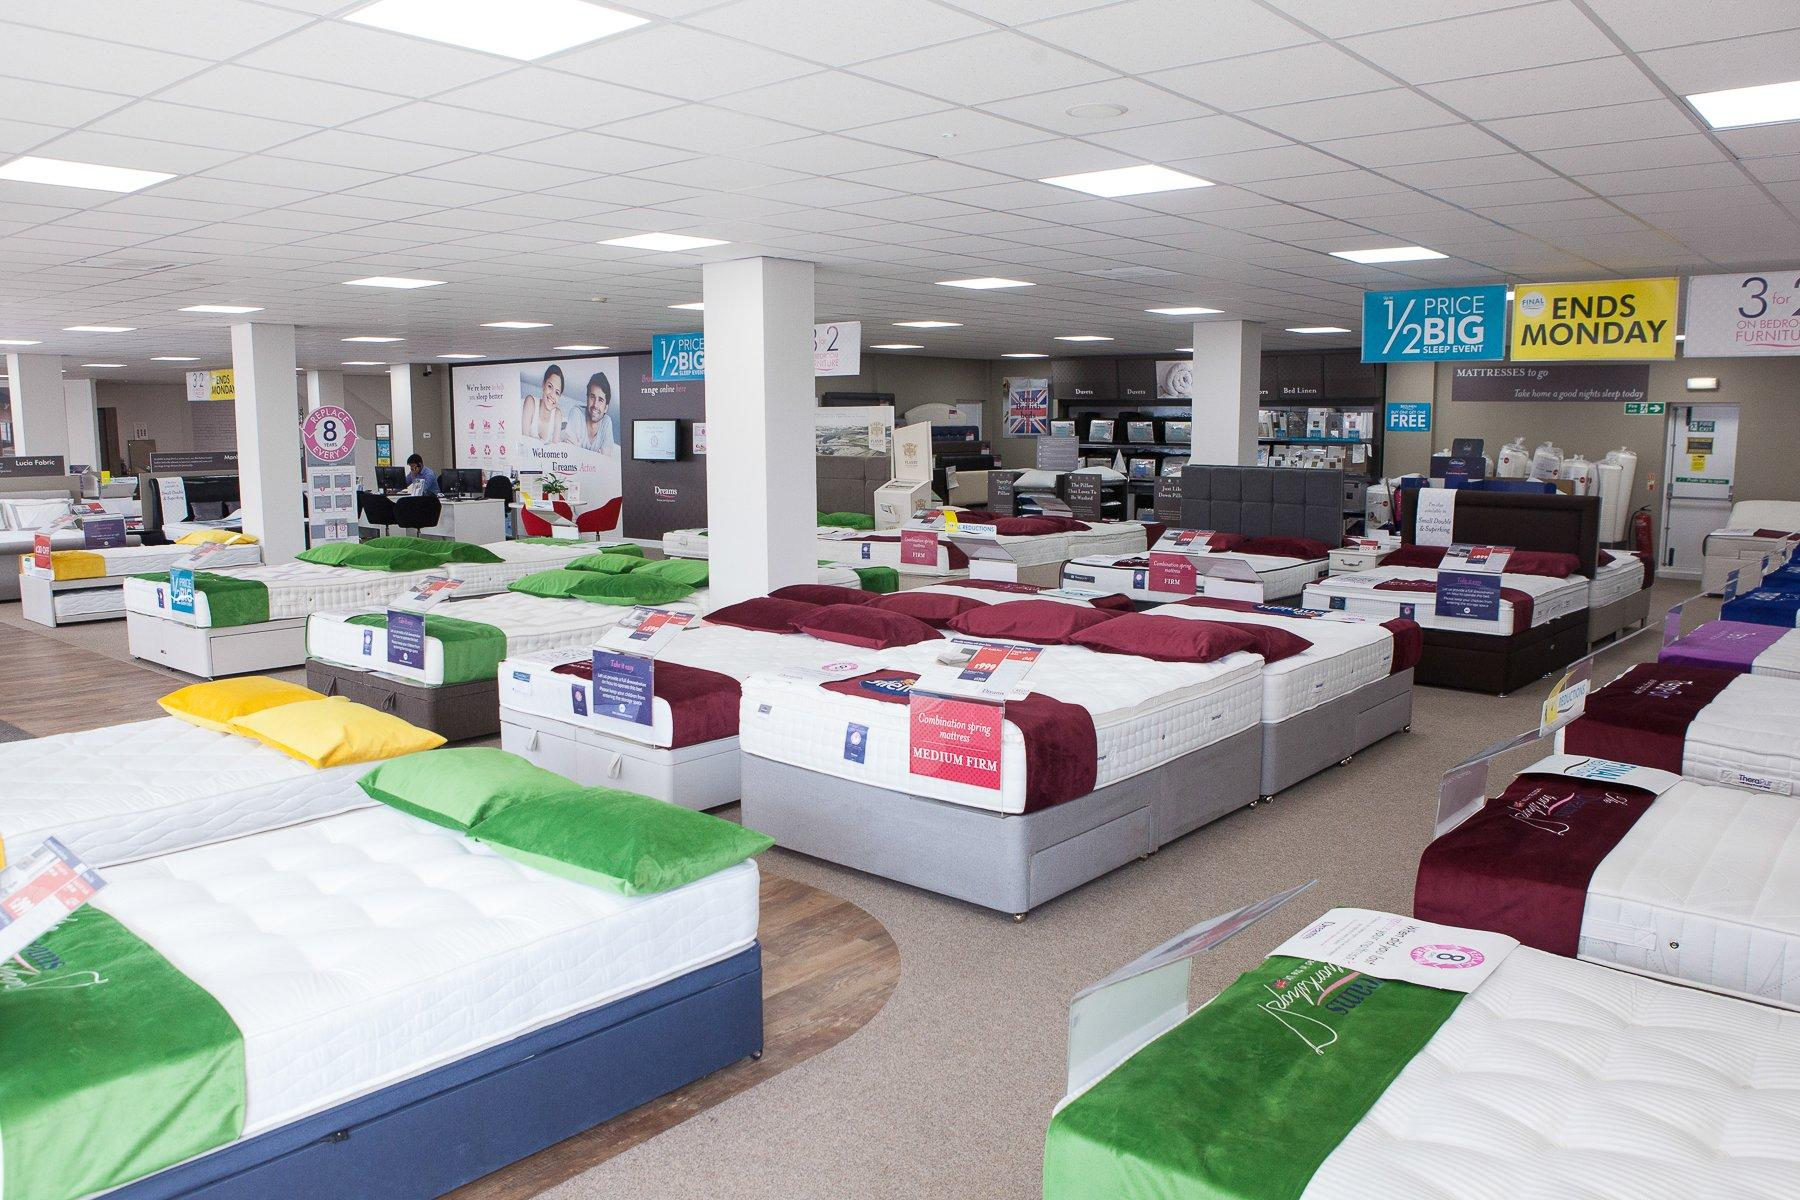 Dreams Store In Acton - Beds, Mattresses & Furniture